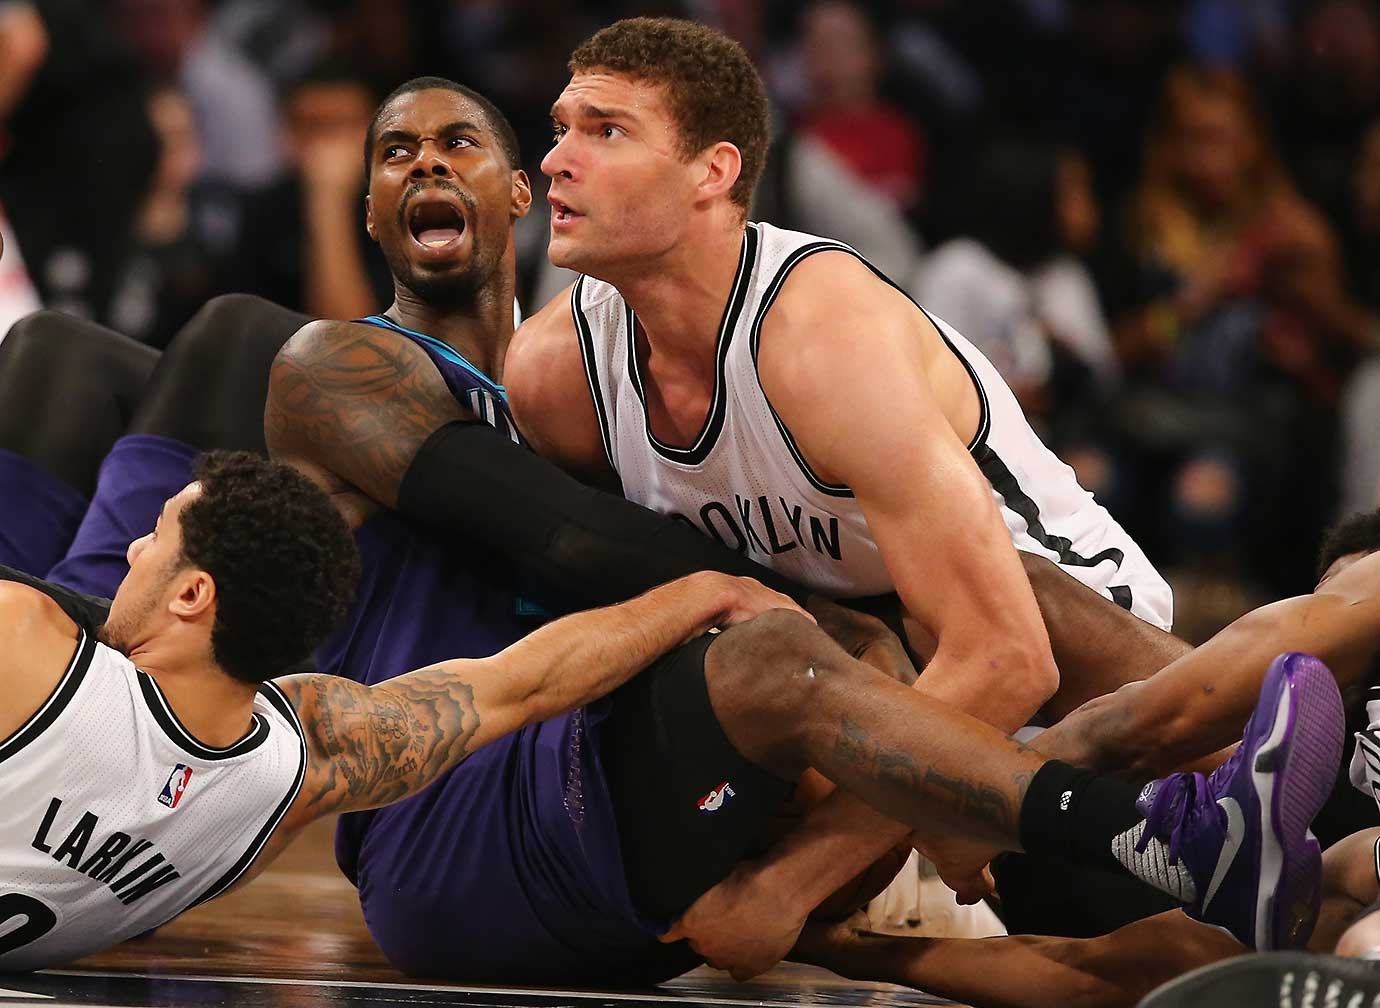 Marvin Williams of Charlotte and Brook Lopez of Brooklyn look to the ref for a ruling while battling for the ball.